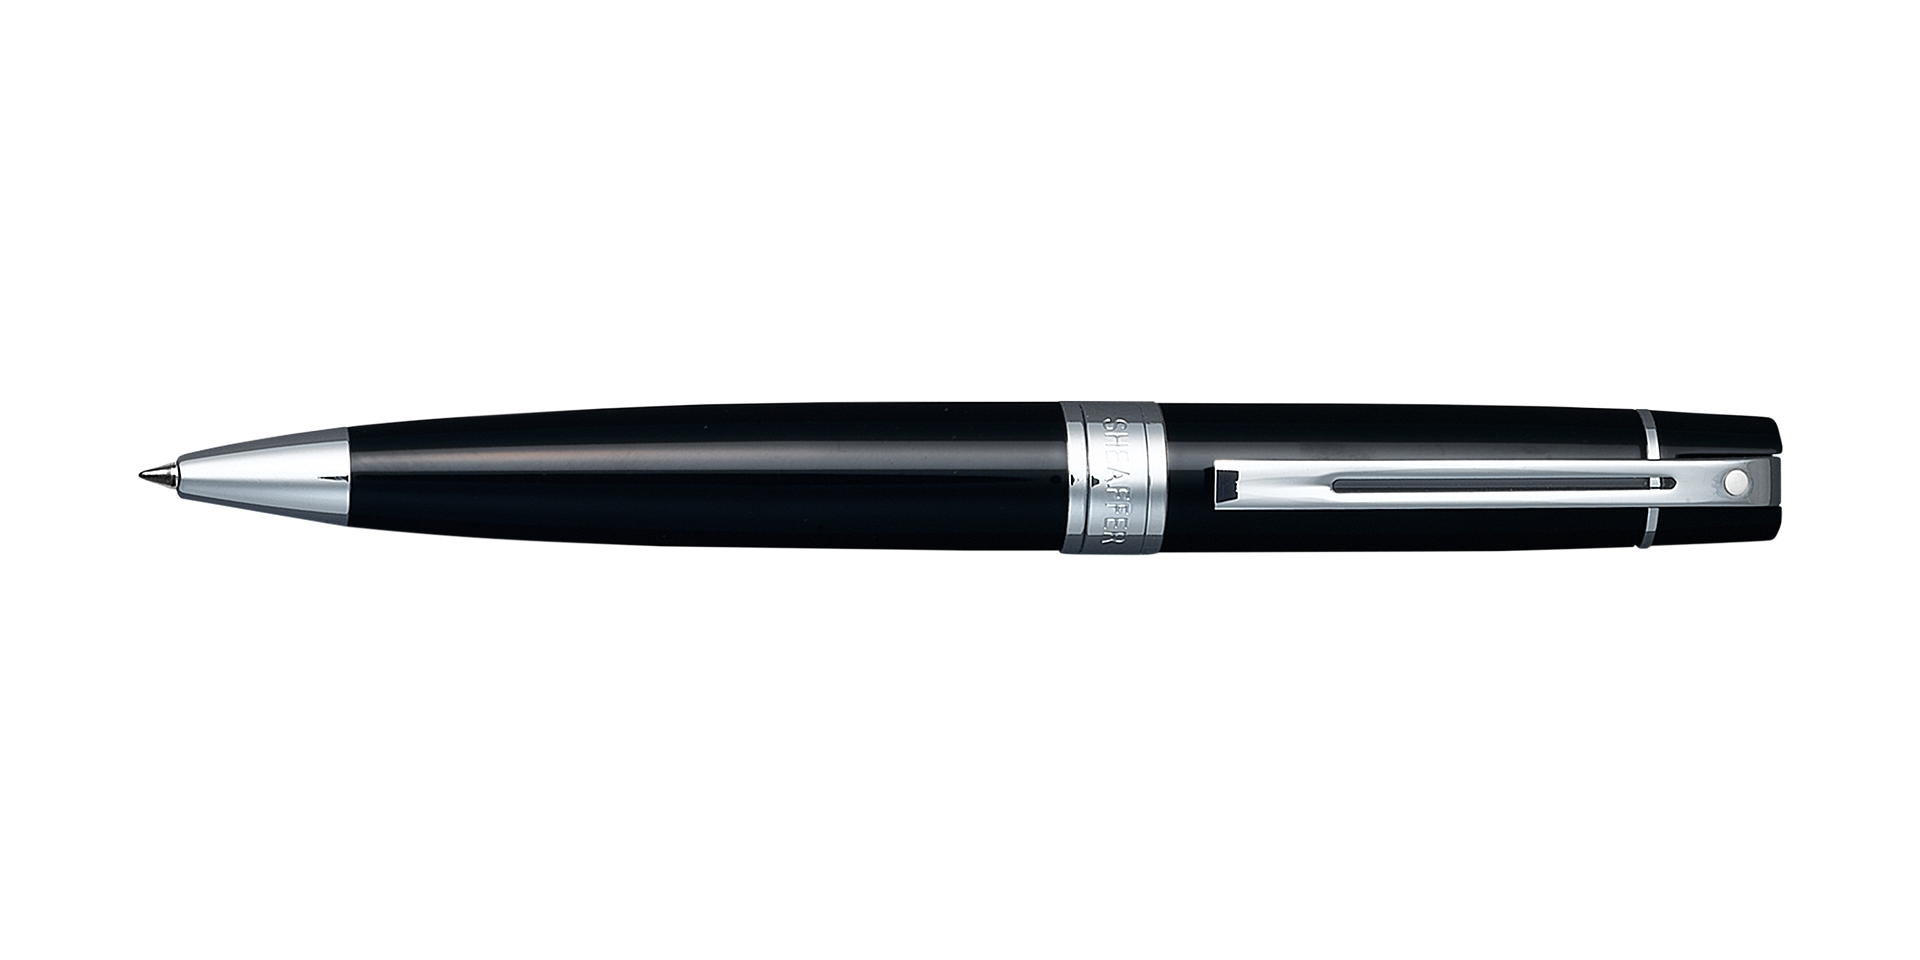 Cross Sheaffer 300 Glossy Black Ballpoint Pen Picture